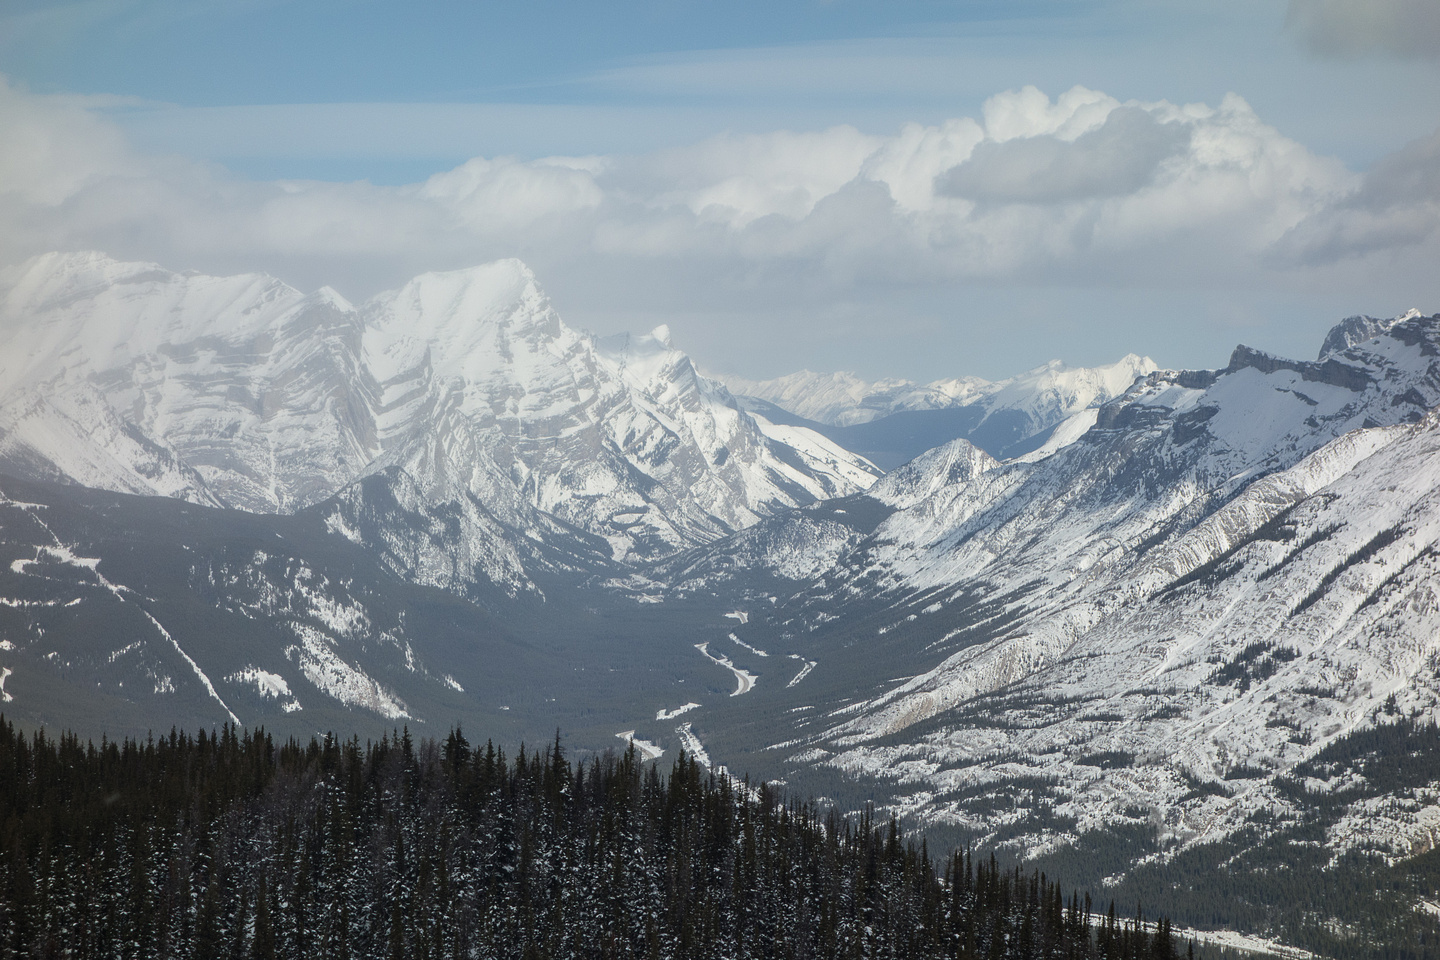 View north over Spoon Needle towards Mount Kidd.